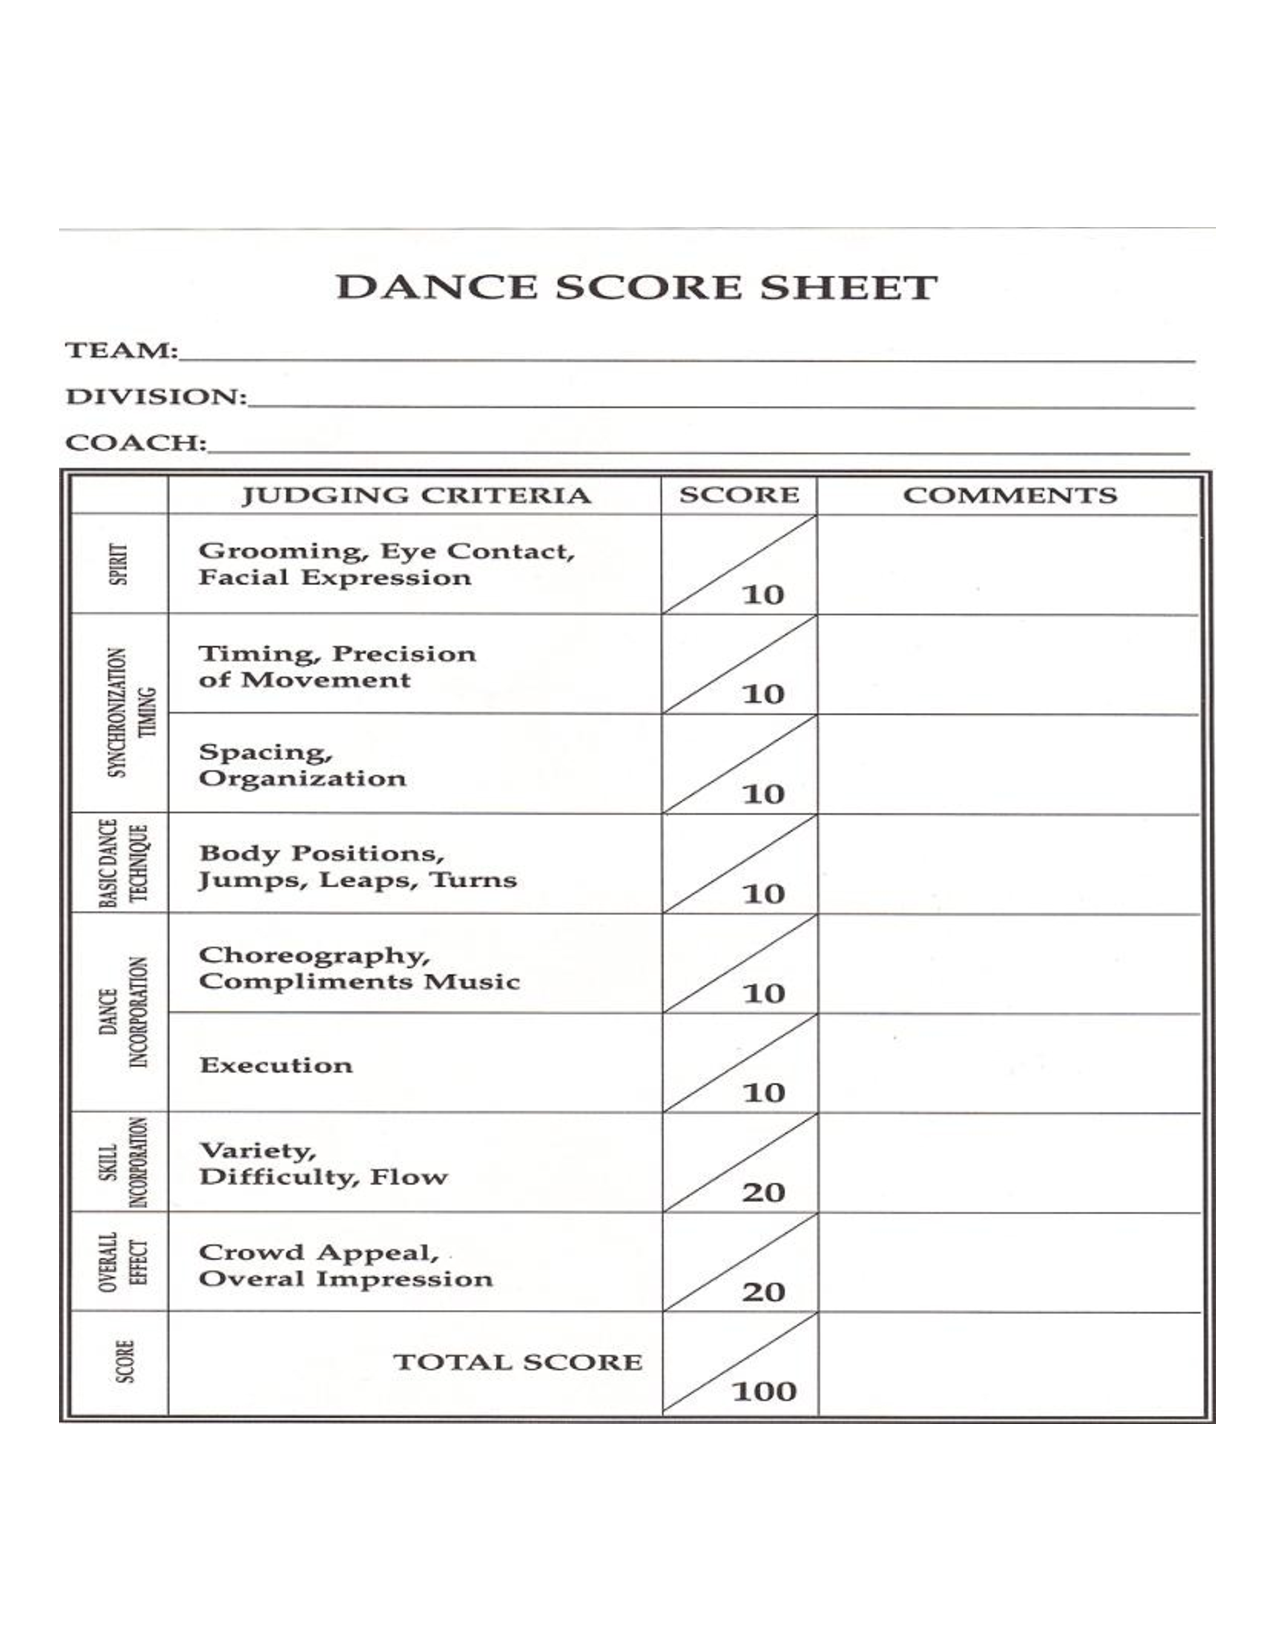 Gbdc Dance Score Sheet  GodS Best Dance Crew